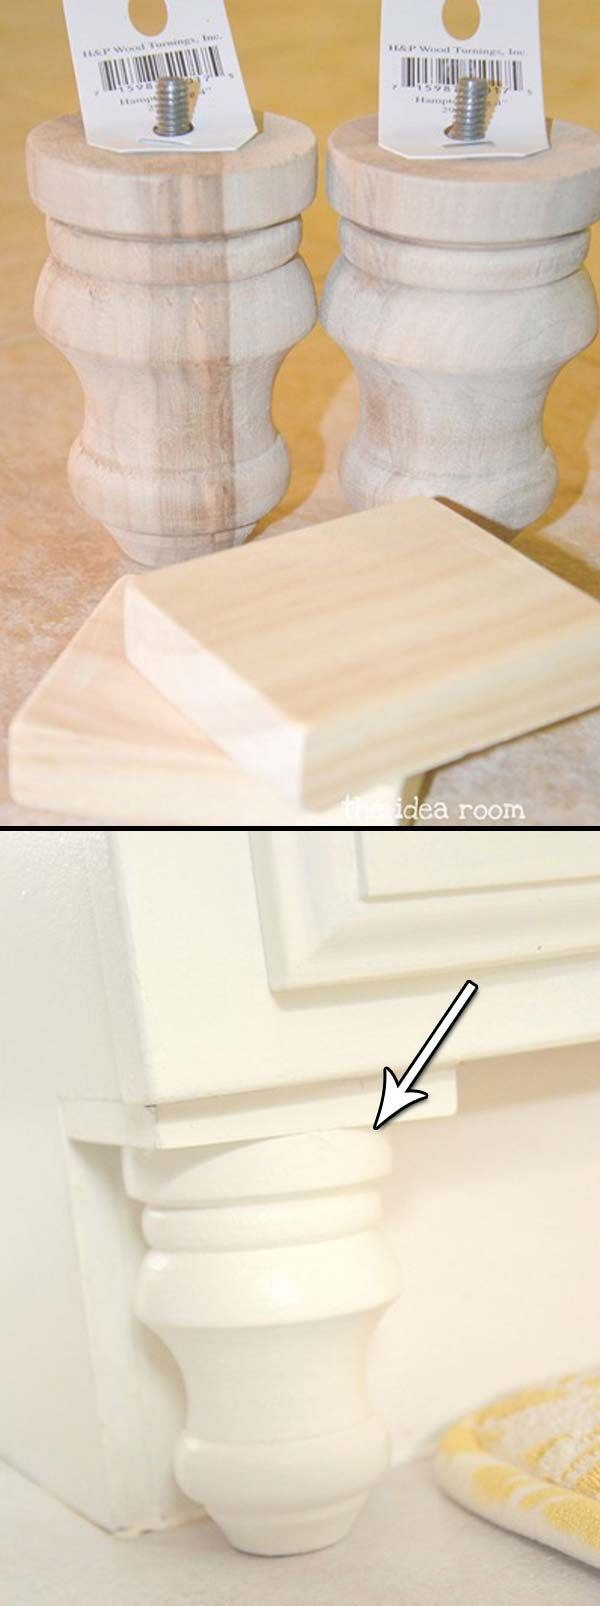 Info's : 2. Adding a couple of the finial wood accents to the bathroom cabinet will make it look a bit more upscale.